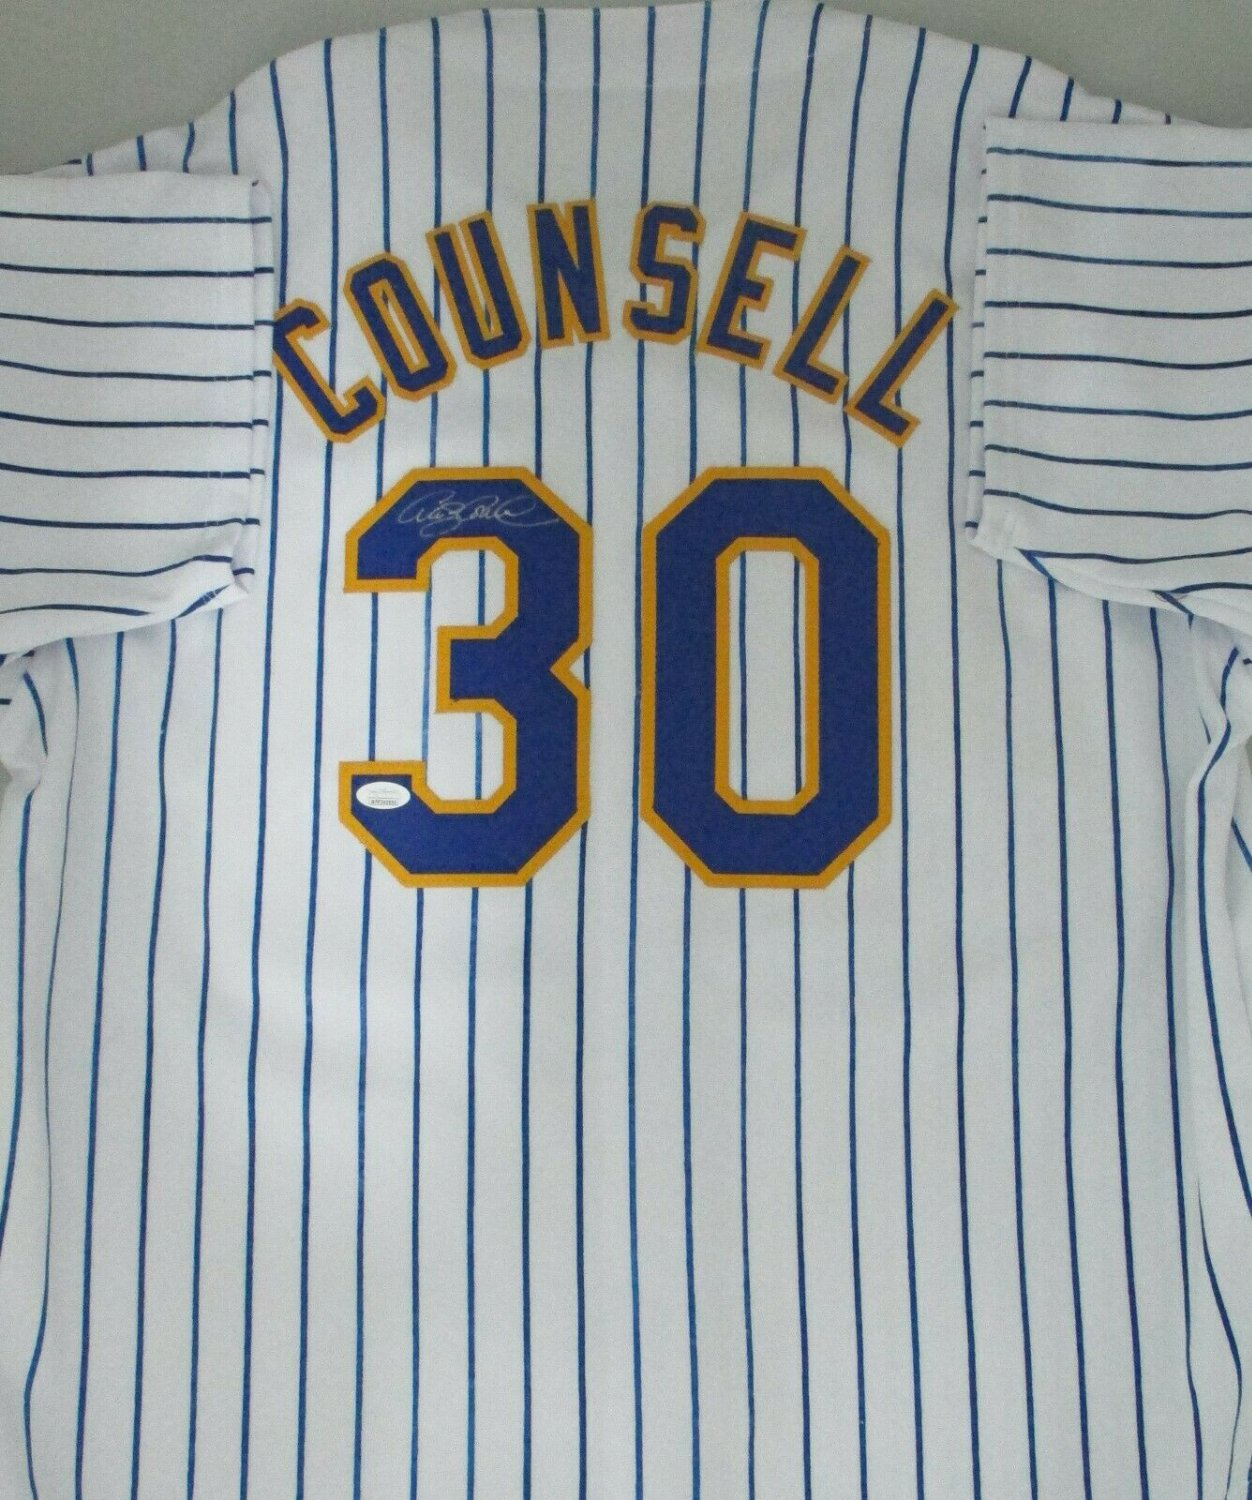 premium selection 91af6 7ec20 Brewers Craig Counsell Autographed Signed Custom Replica ...